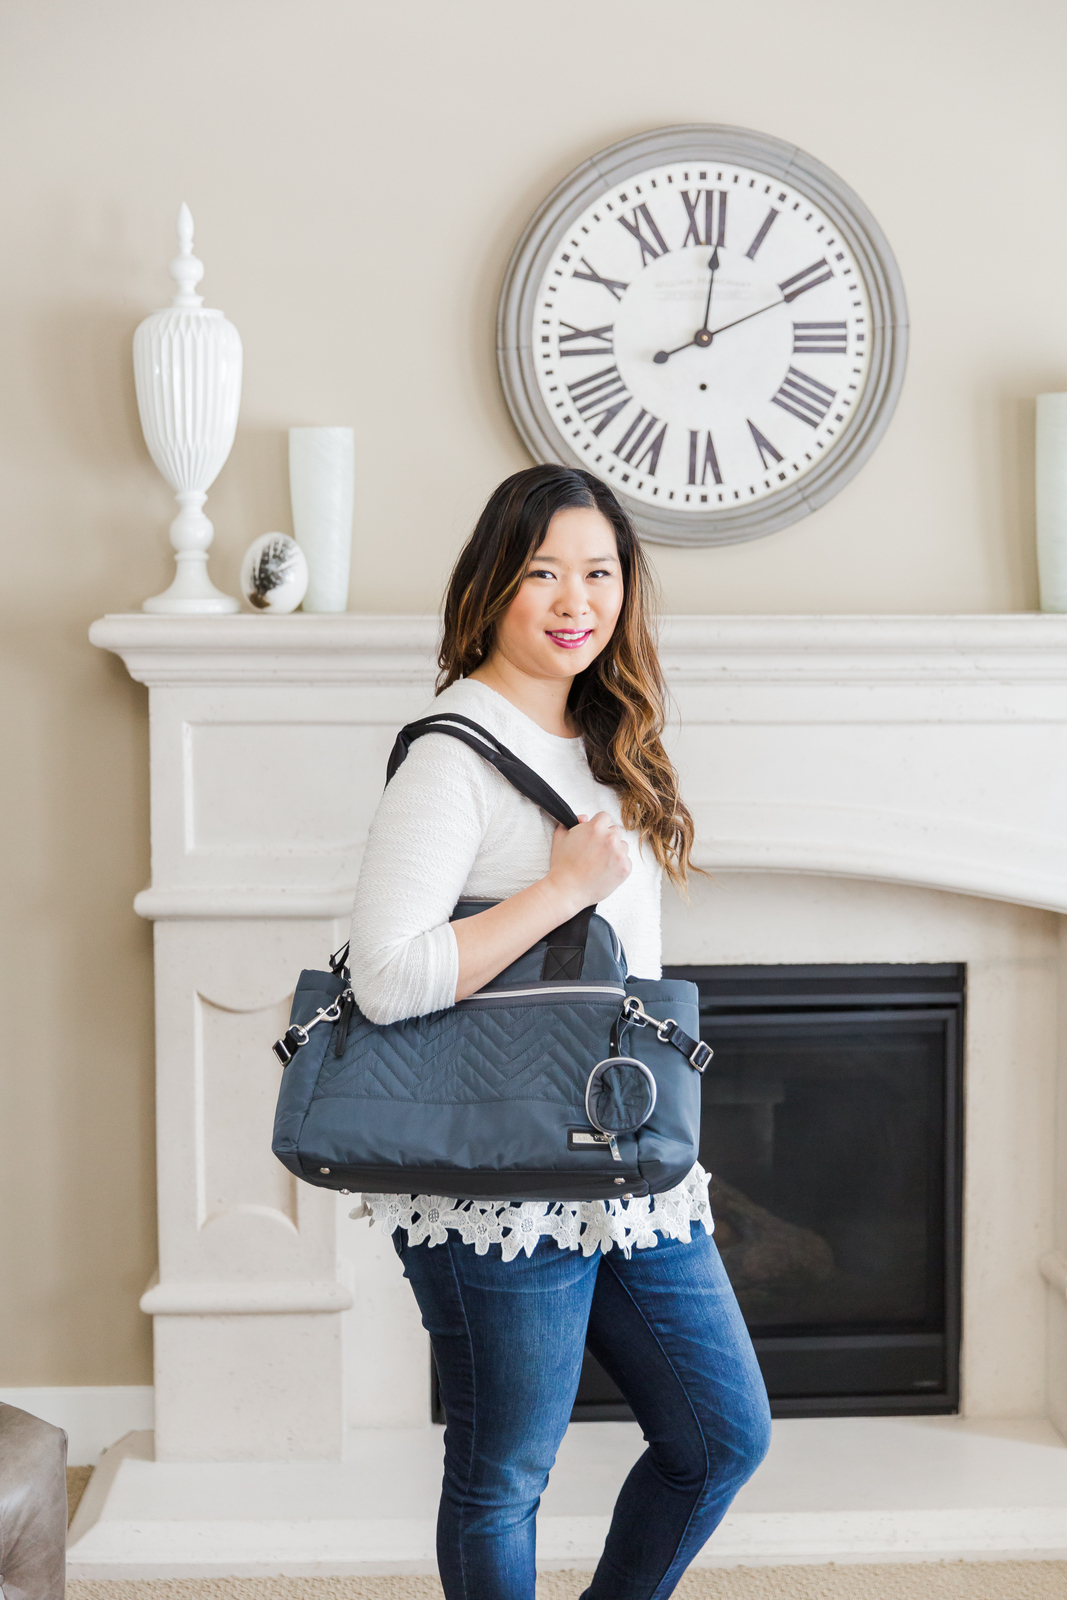 Skip Hop Suite Designer Diaper Bags: the satchel set